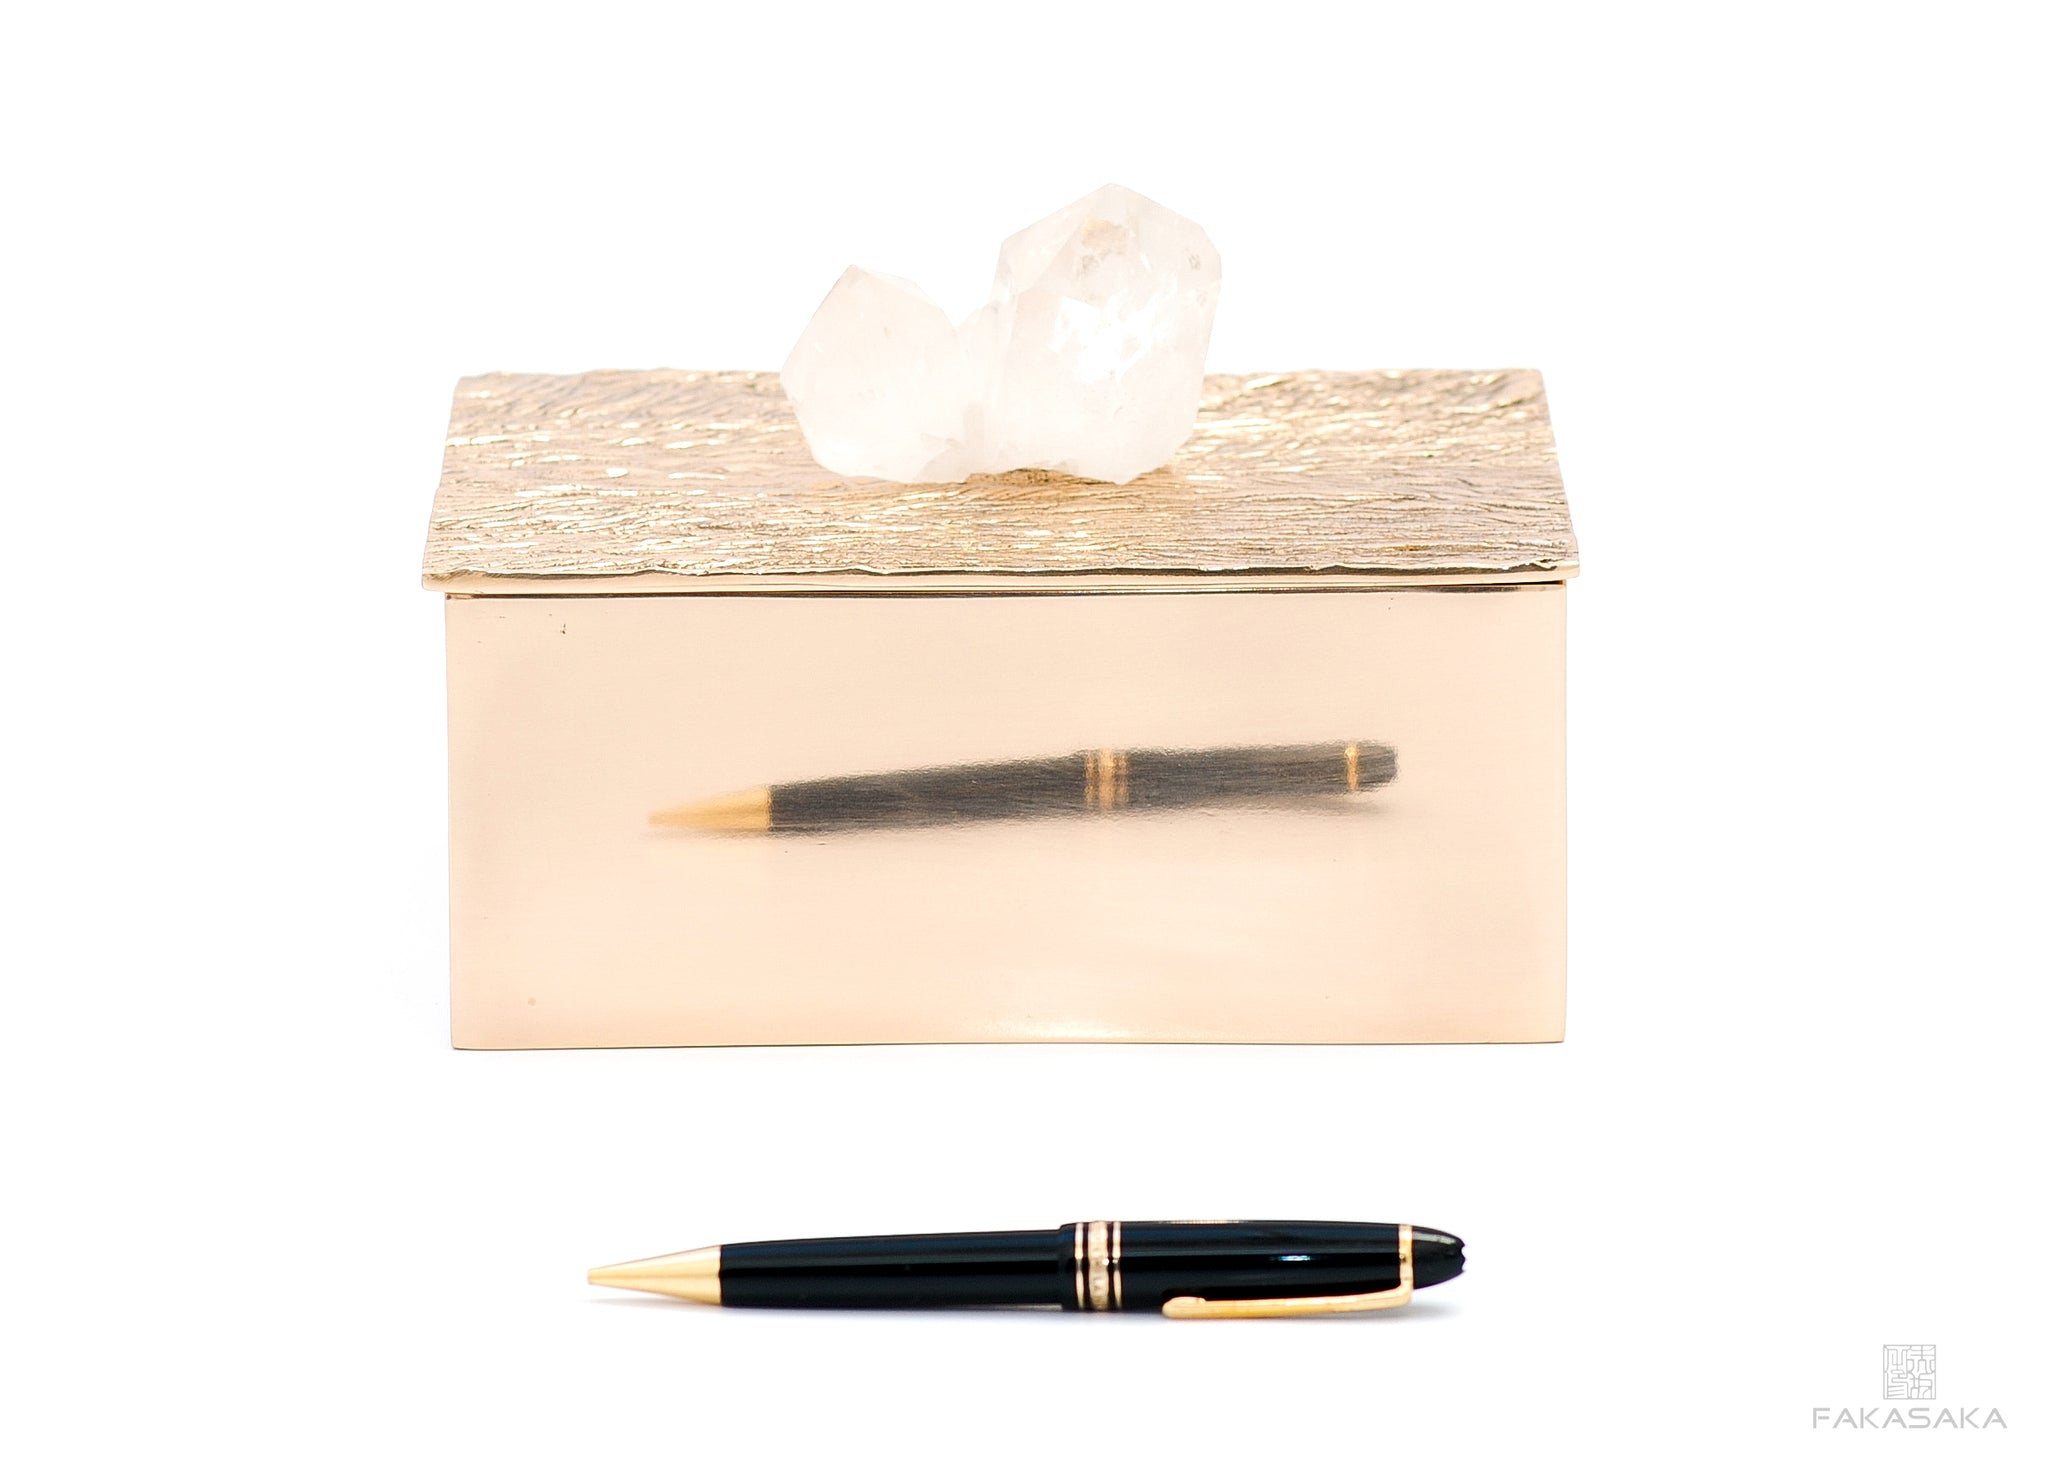 NICKS BOX<br>CLEAR QUARTZ ON TOP<br><br>POLISHED BRONZE